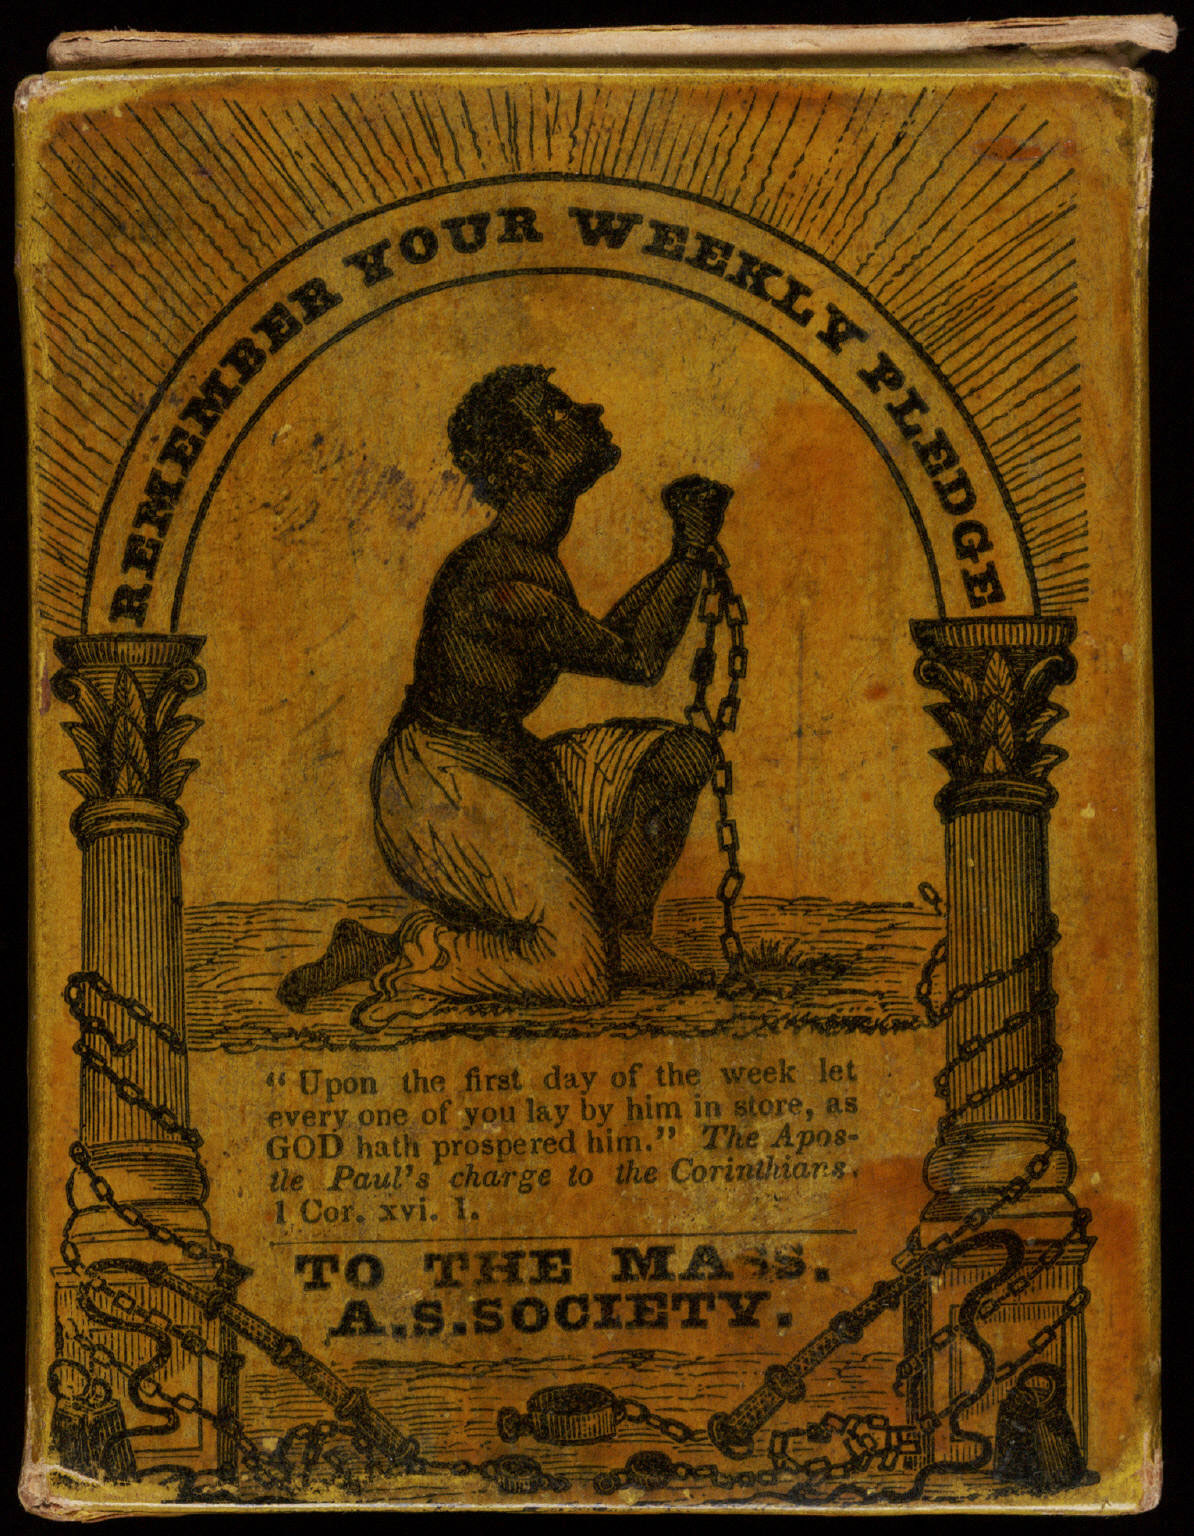 slavery and new nation The founding fathers and slavery:  whose youth in the west indies embittered him against slavery, were among the founders of the new york manumission society in 1785, which established the new york african free school in 1787  draftsman of the declaration of independence of the united states and the nation's first secretary of state.